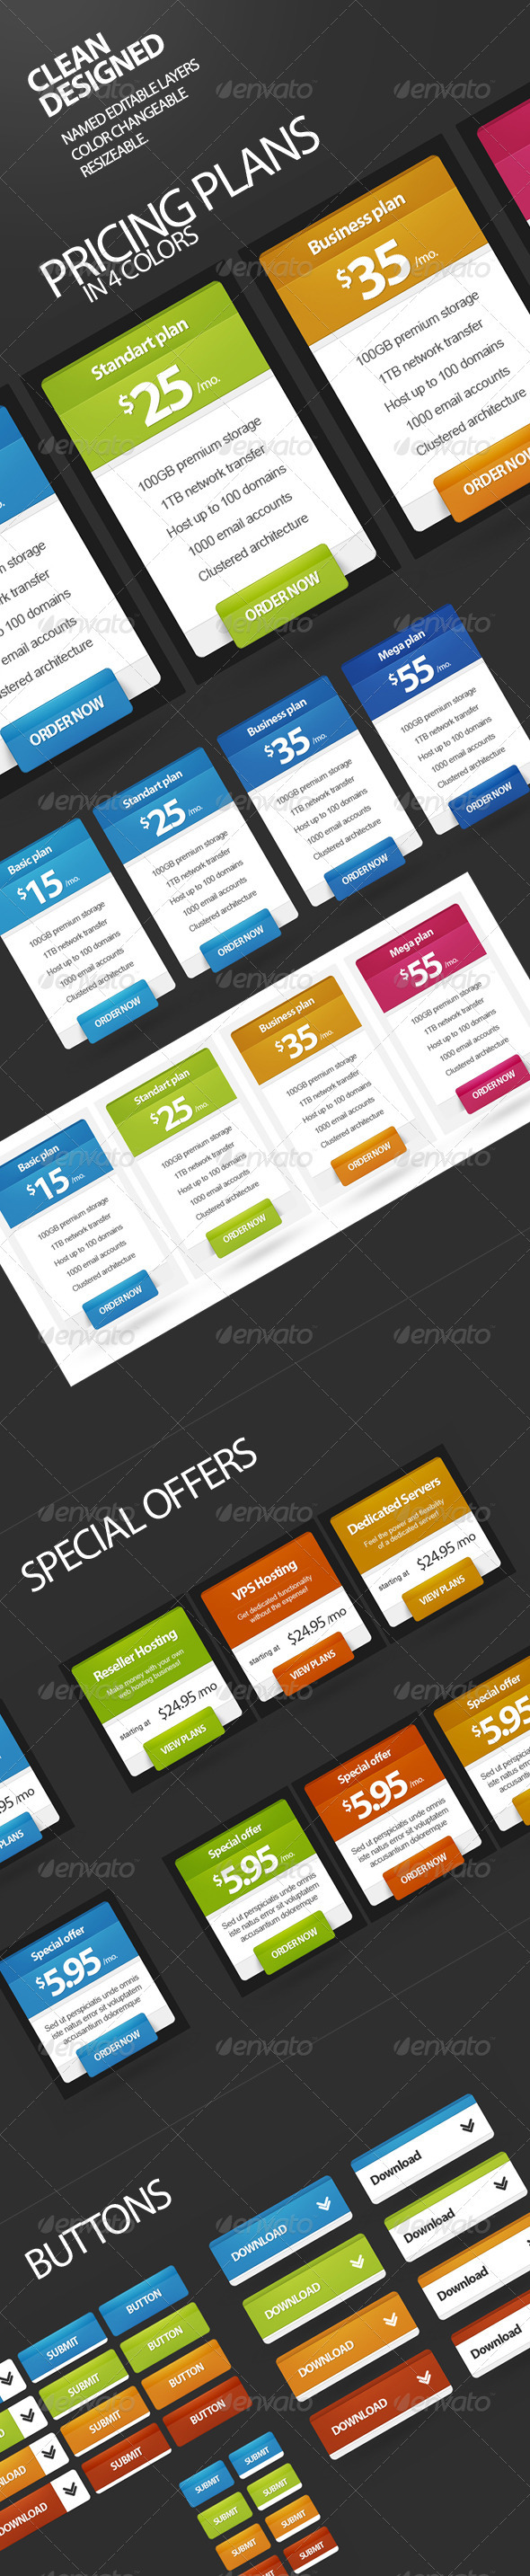 Pricing Plans, Buttons, Special Offer v2 - Tables Web Elements